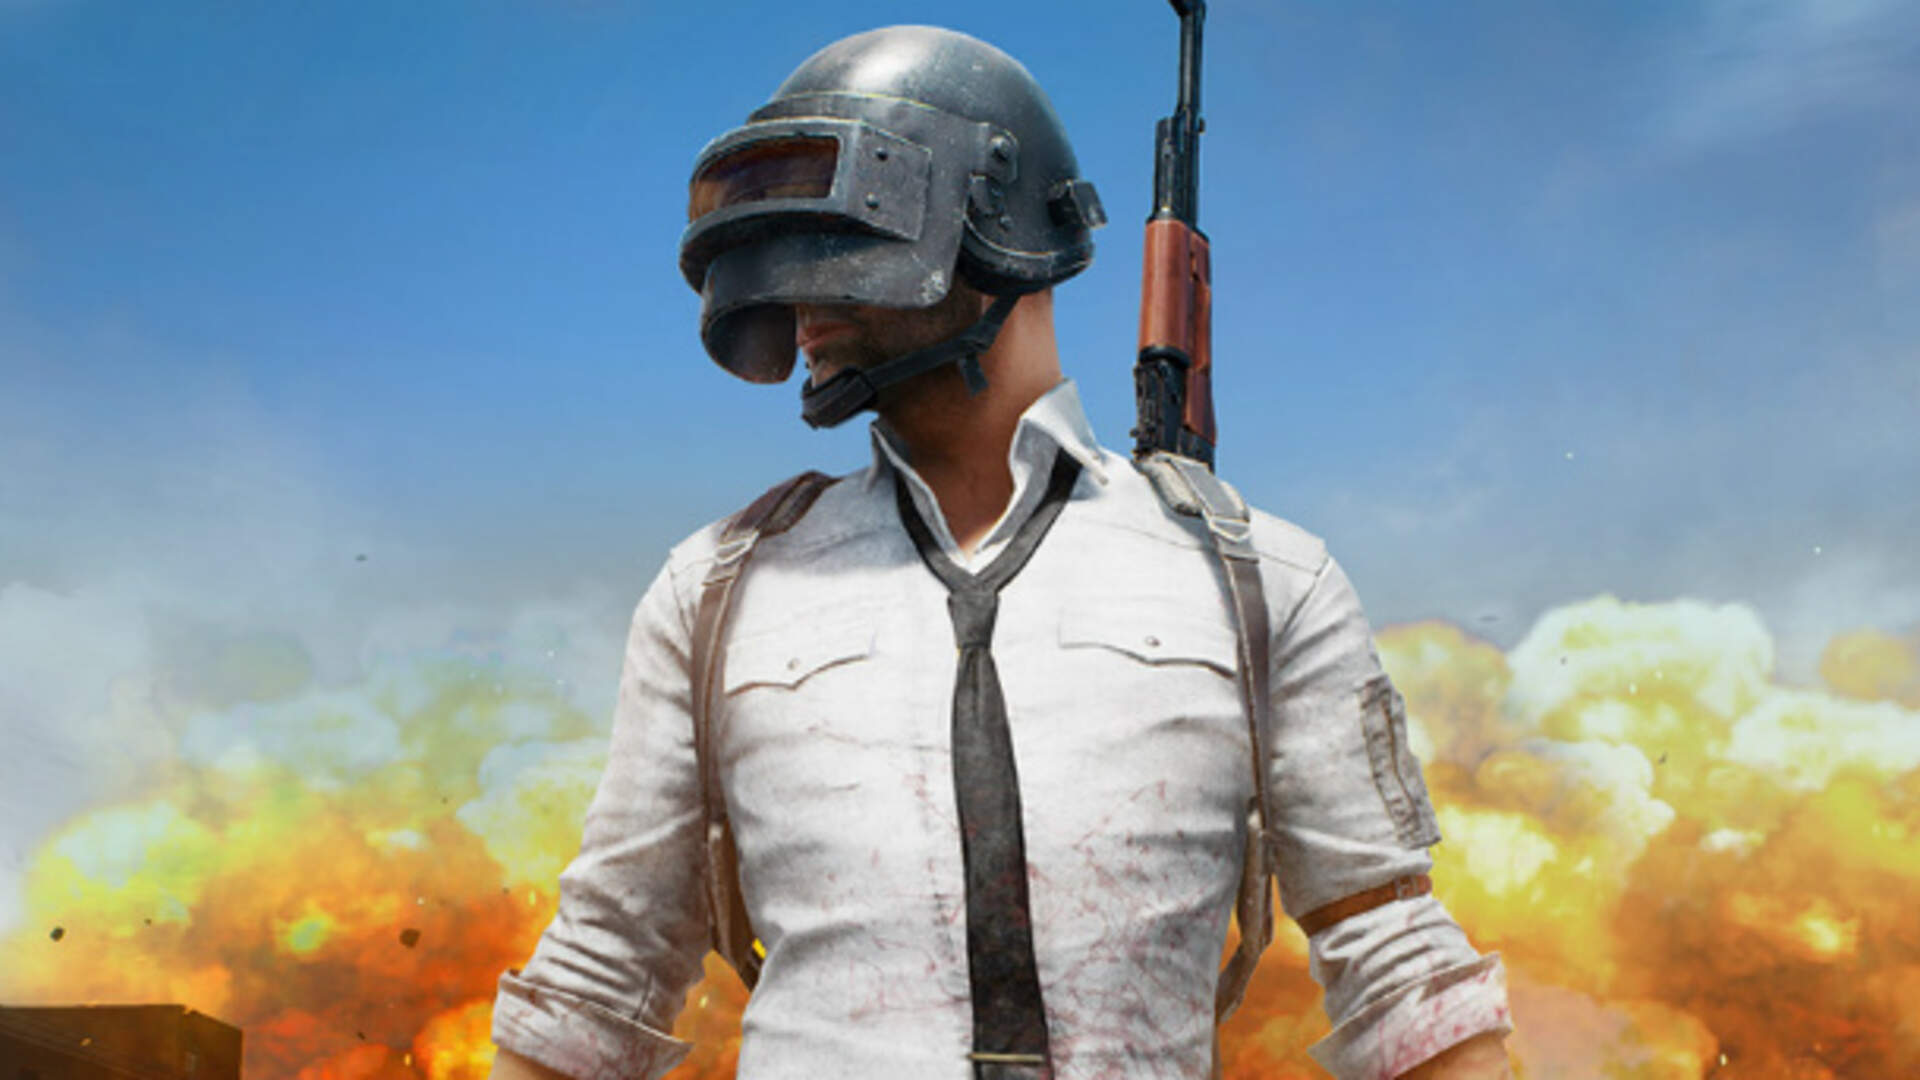 All the PUBG Essential Tips for the PC, PS4, Xbox One